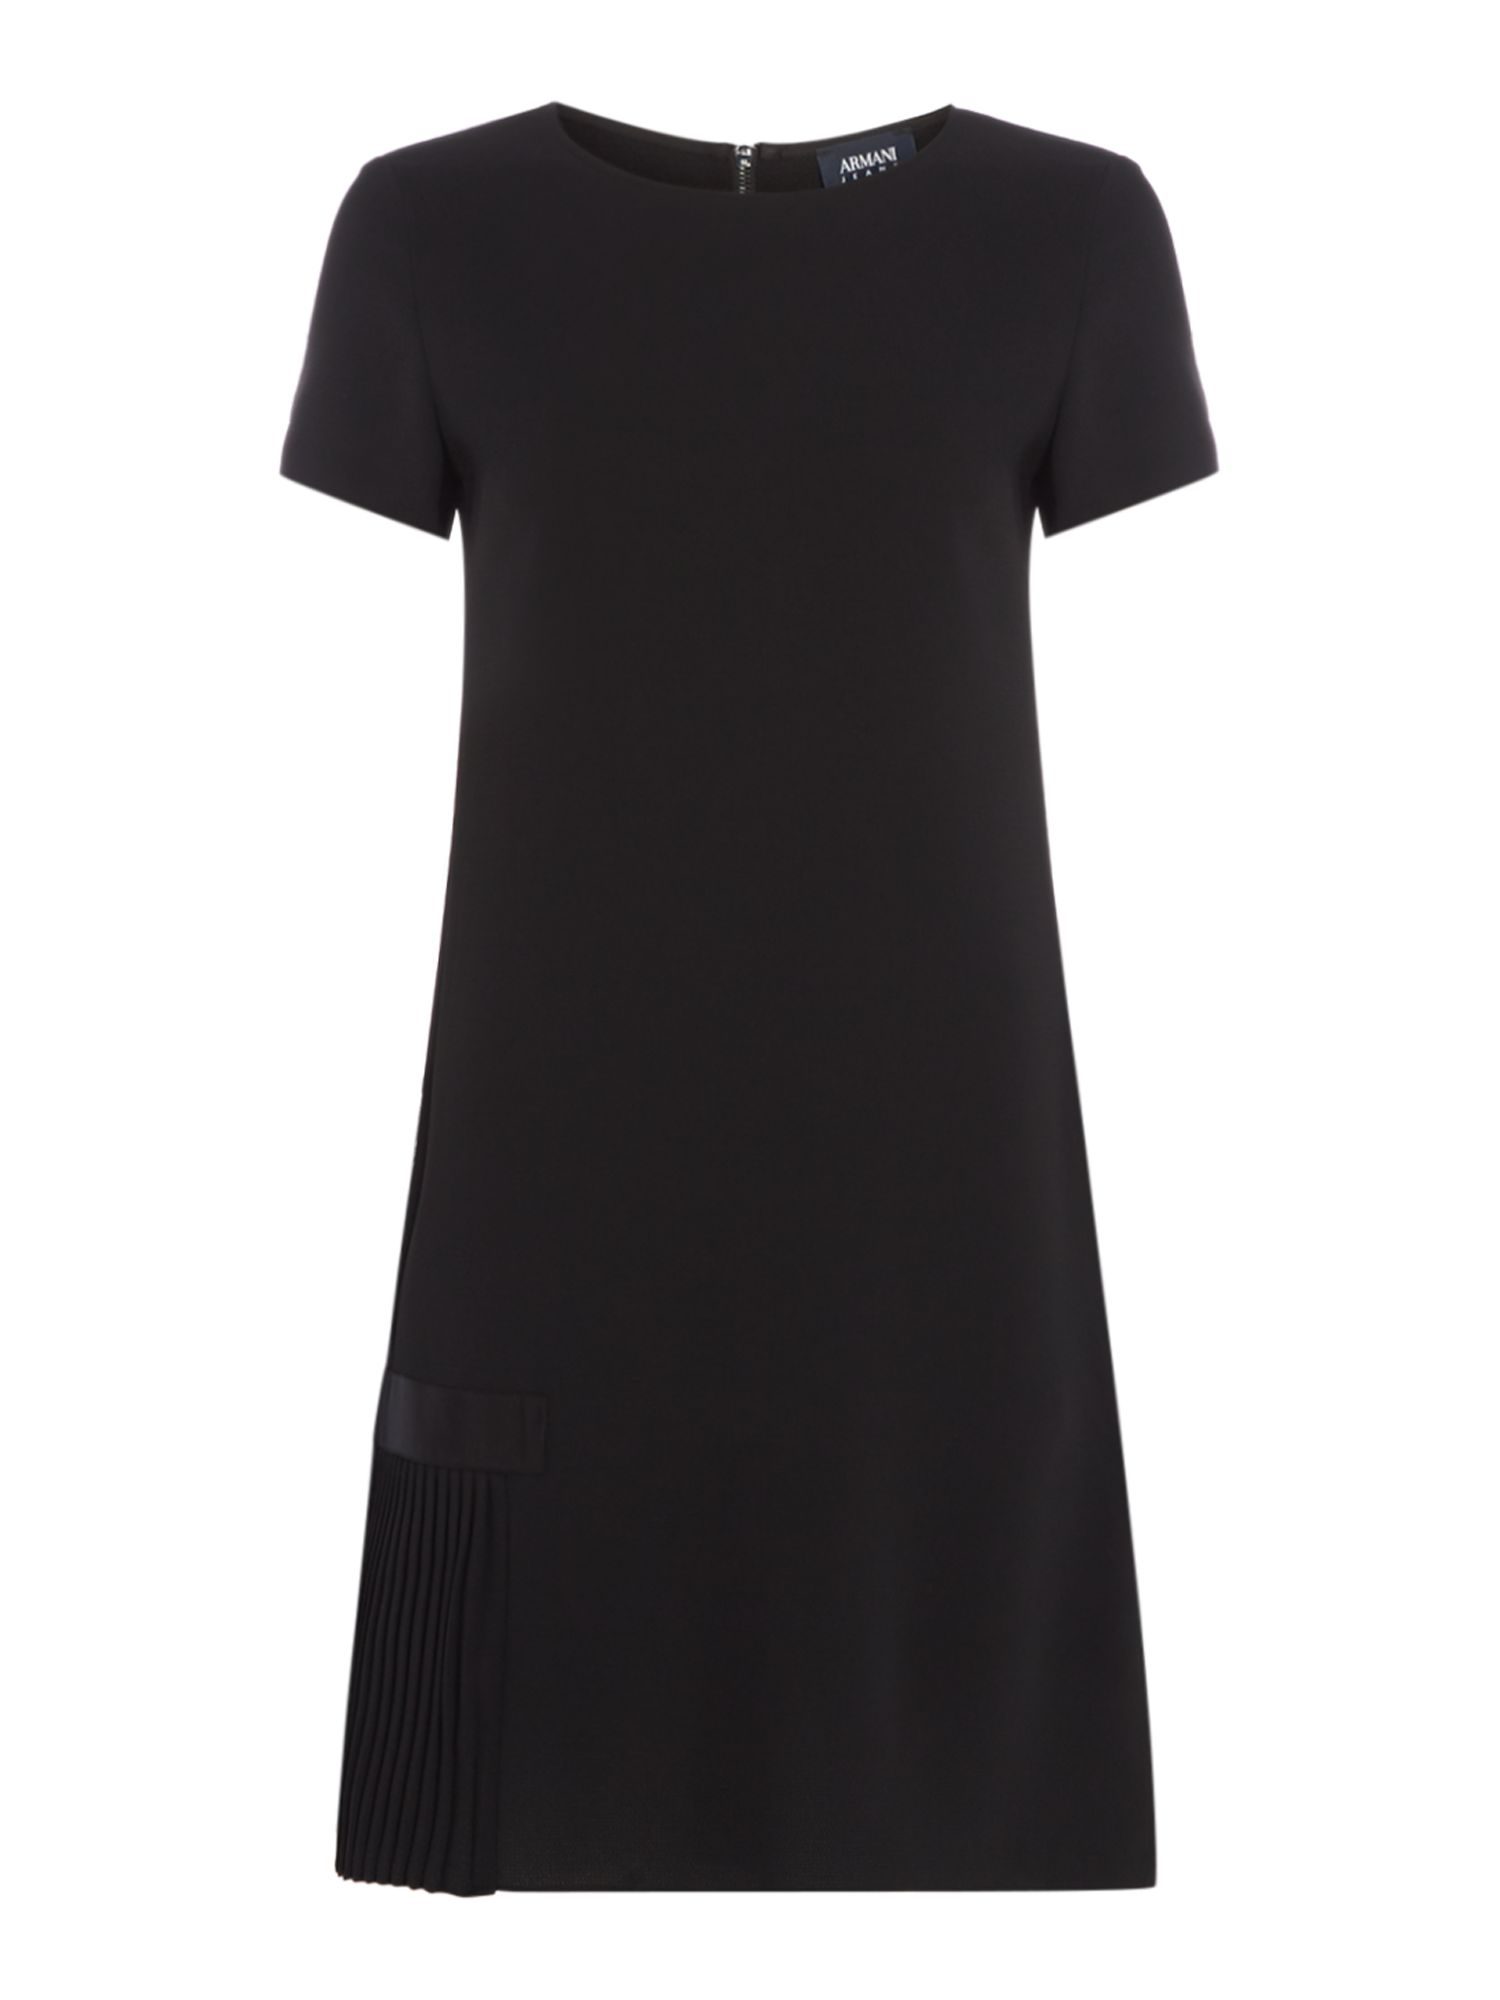 Armani Jeans SS pleat shift dress in nero, Black